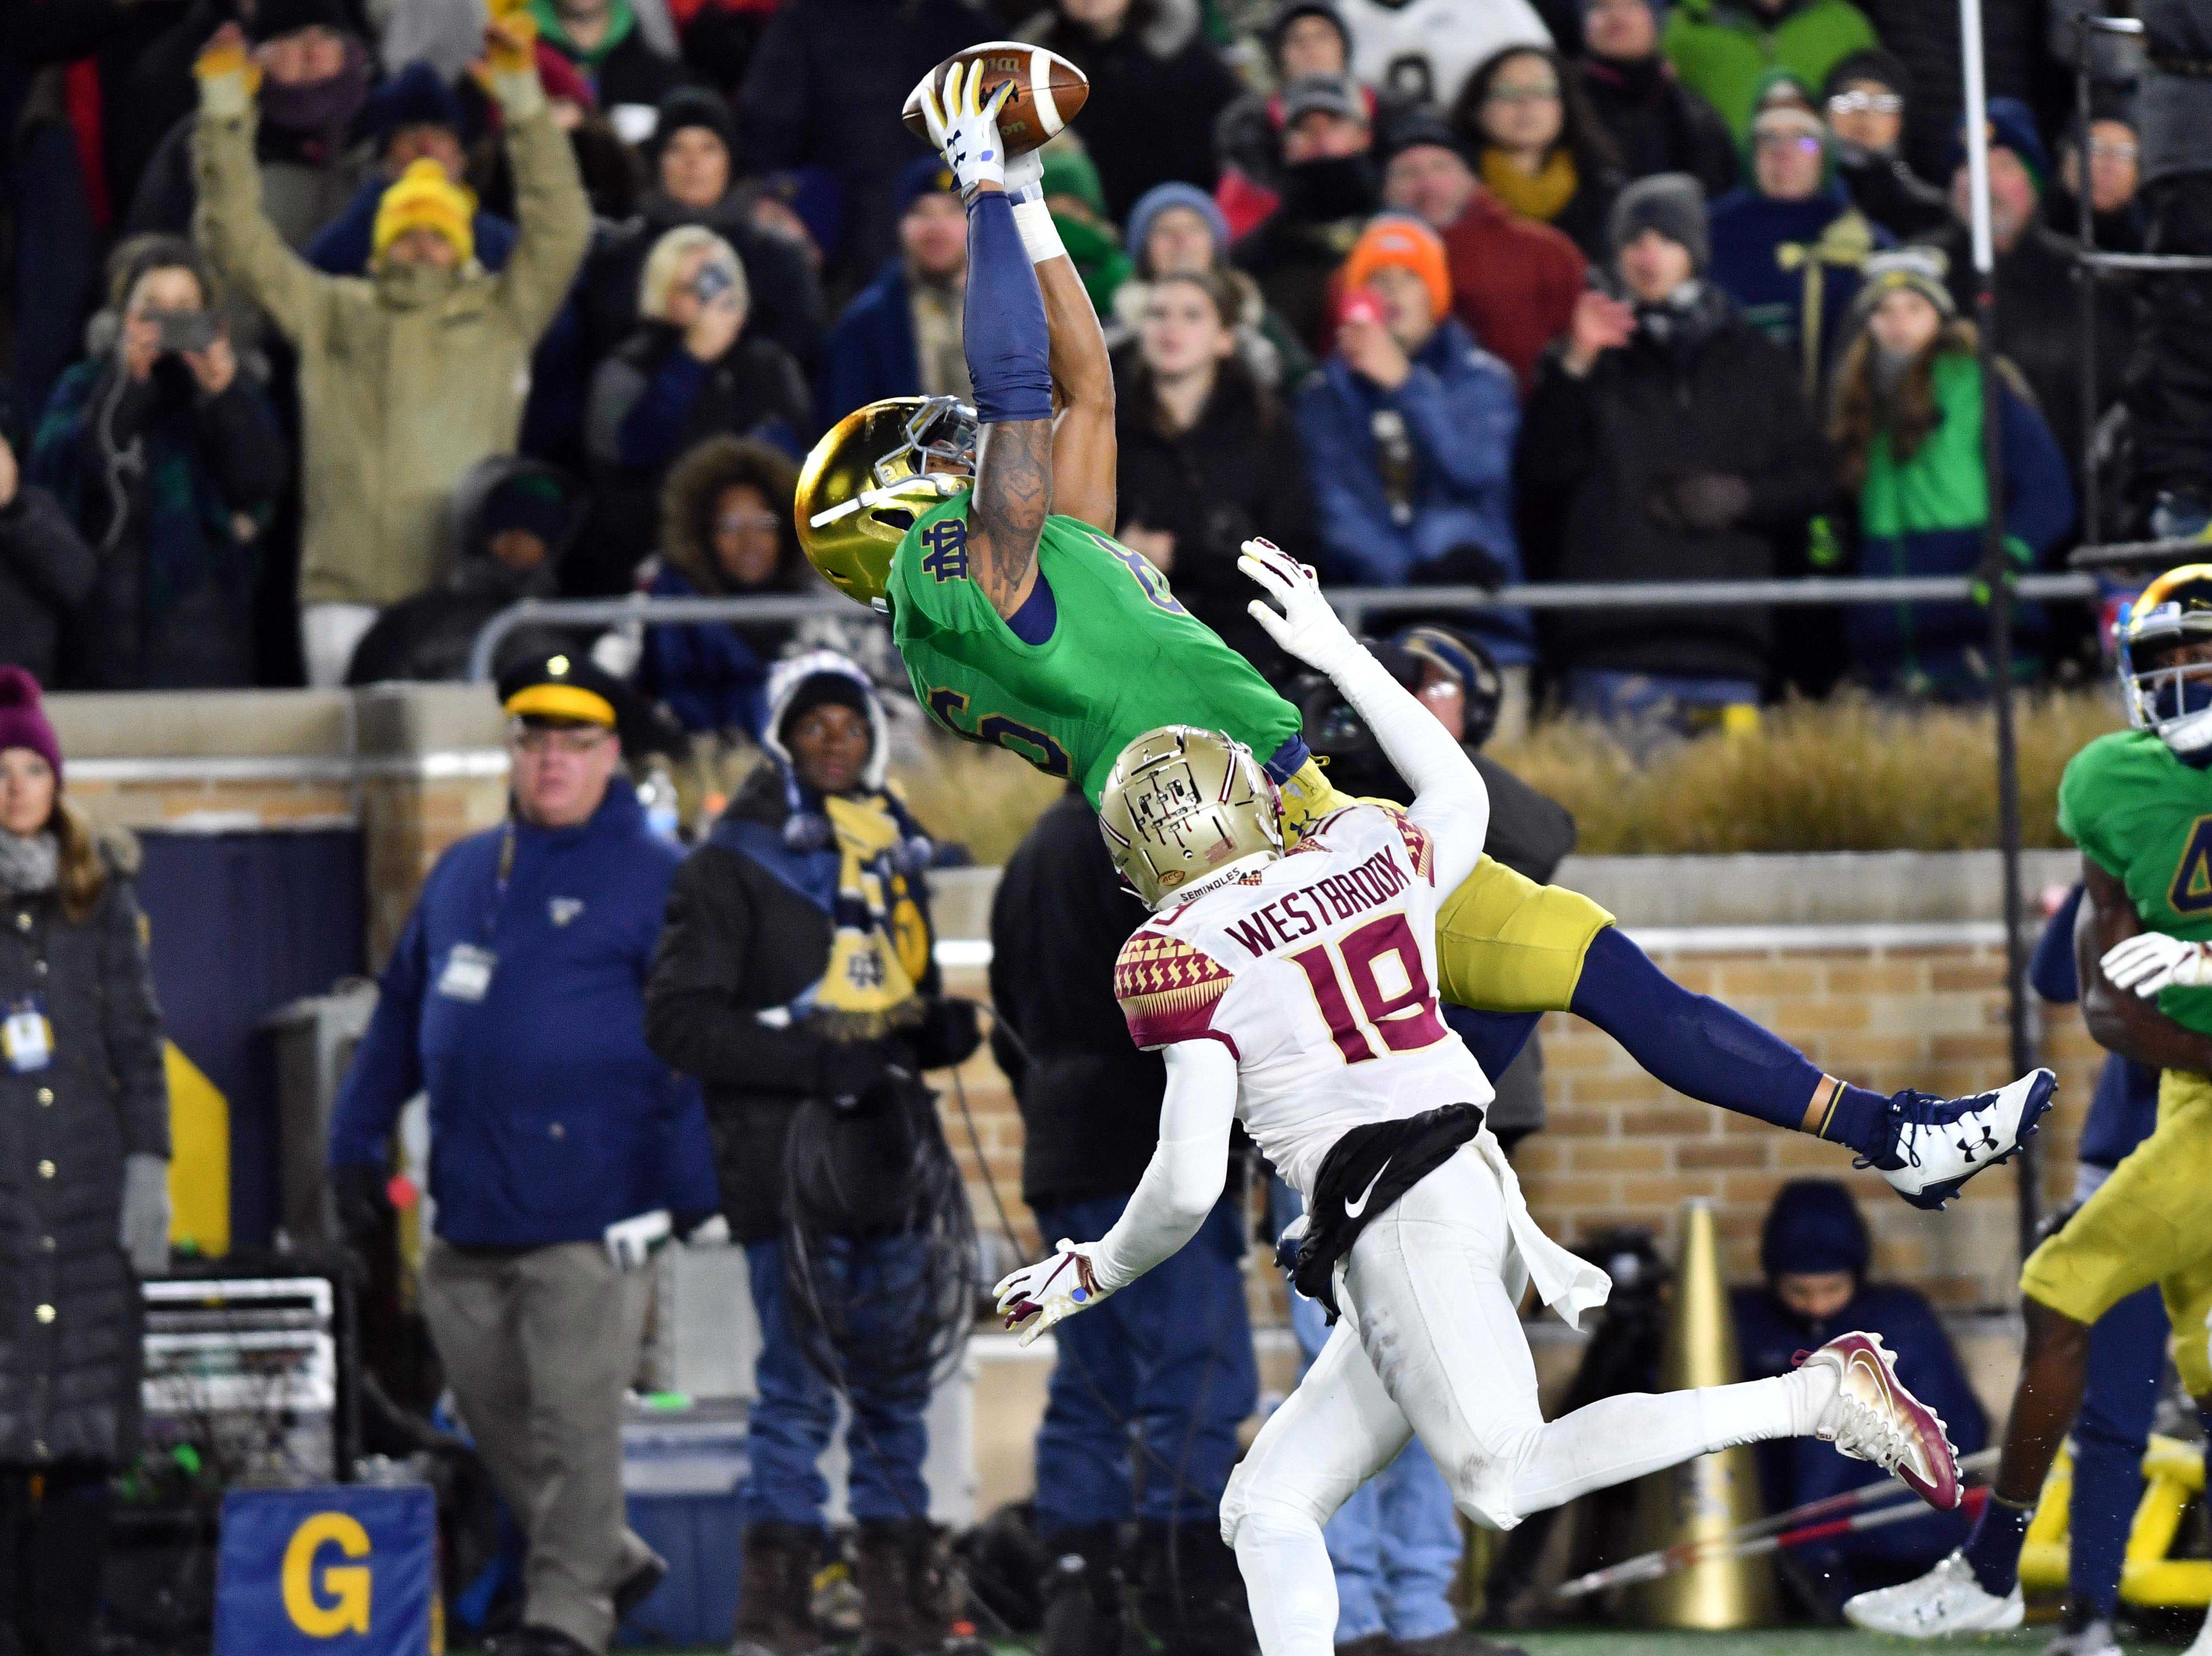 Nov 10, 2018; South Bend, IN, USA; Notre Dame Fighting Irish tight end Alize Mack (86) catches a pass for a touchdown over Florida State Seminoles defensive back A.J. Westbrook (19) in the second quarter at Notre Dame Stadium. Mandatory Credit: Matt Cashore-USA TODAY Sports